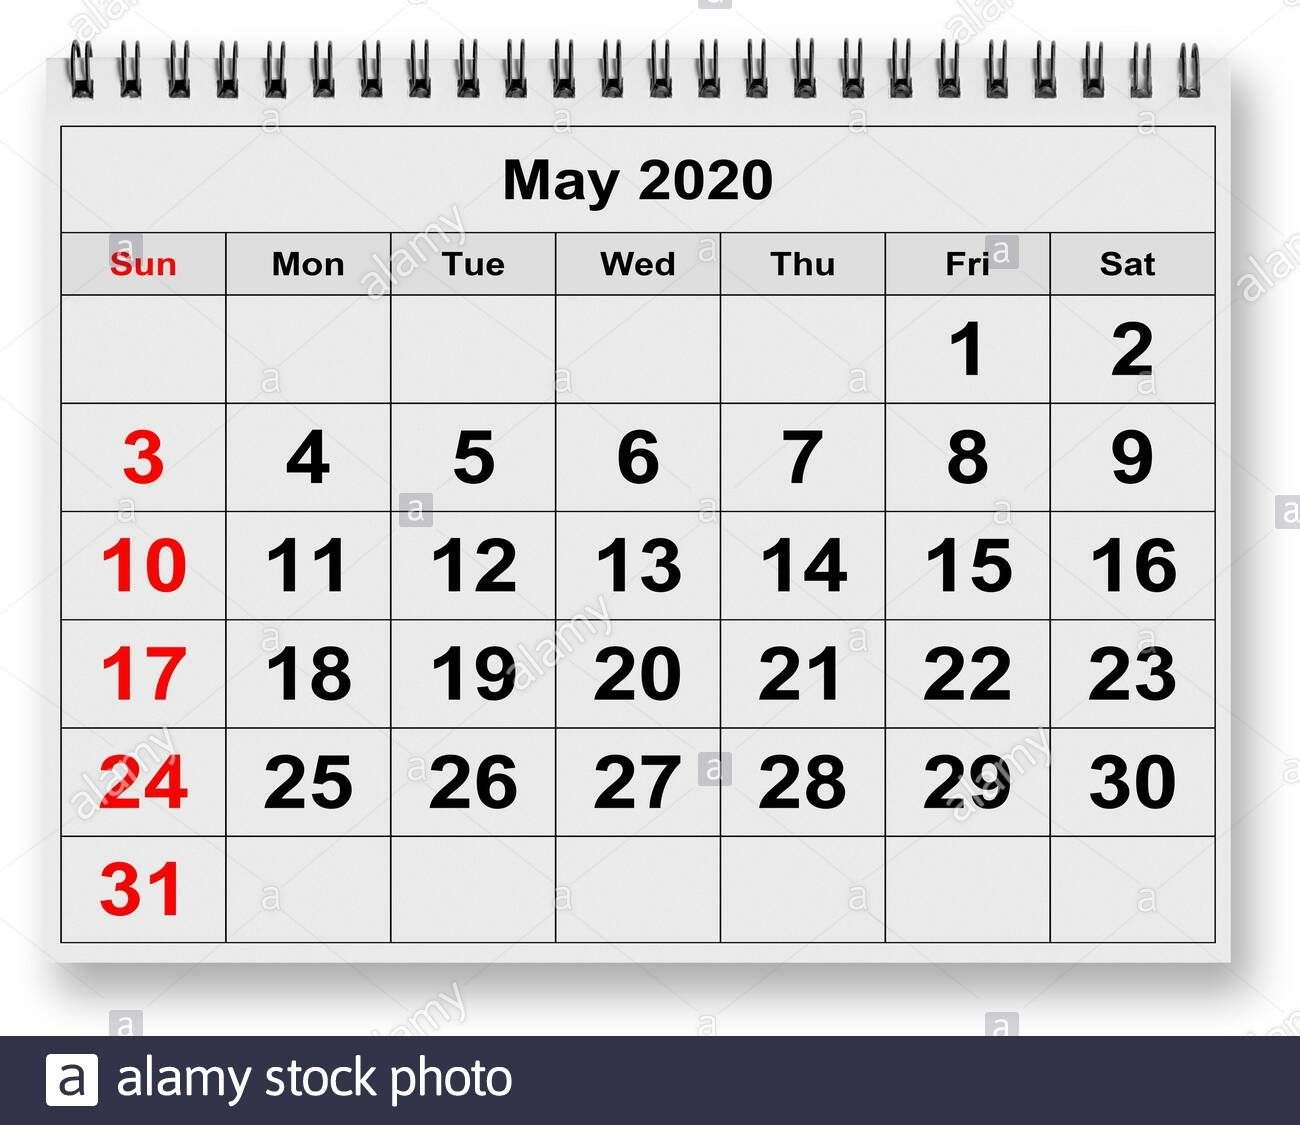 one page of the annual monthly calendar month may 2020